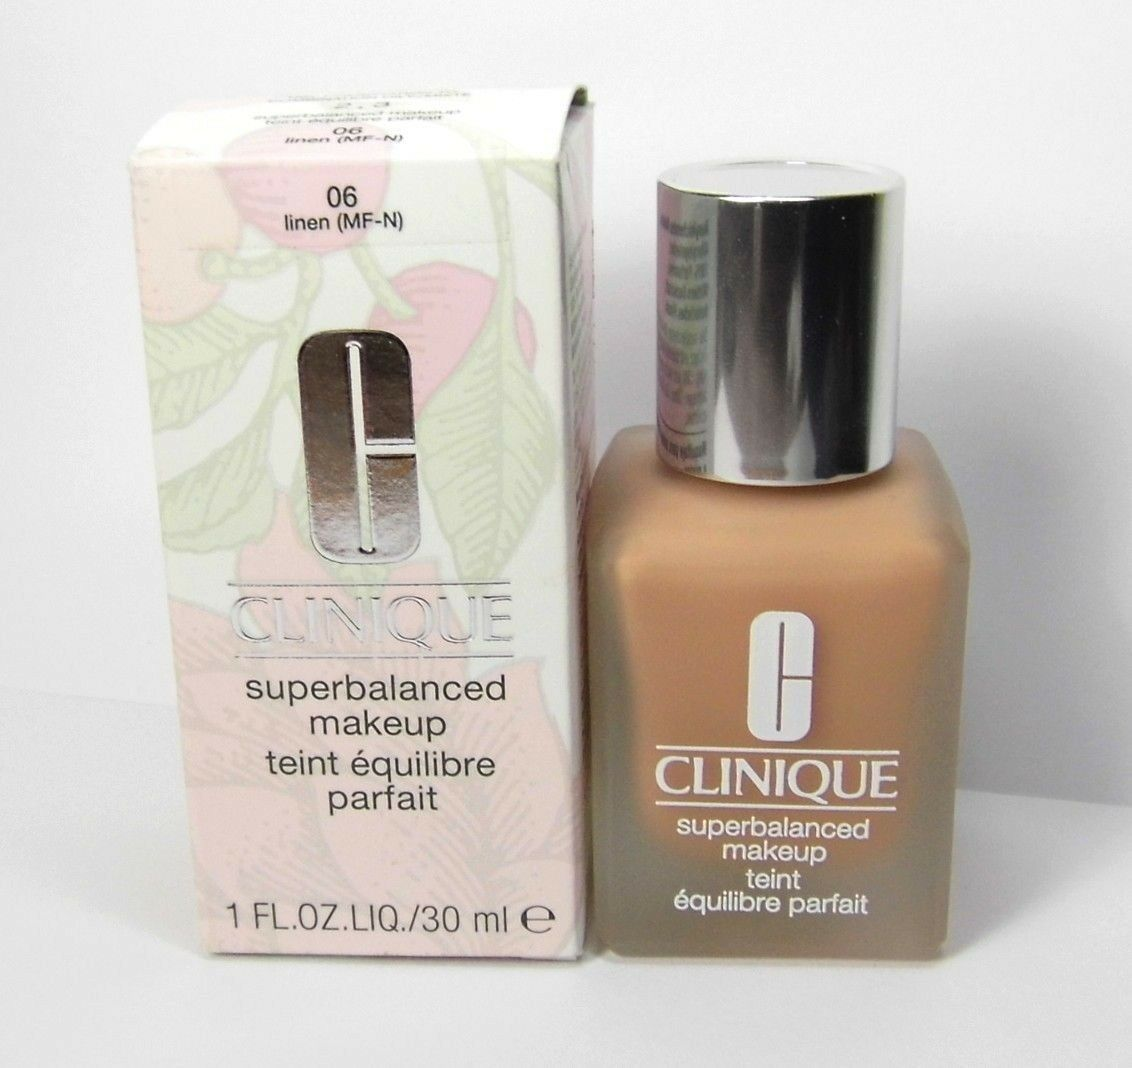 Primary image for CLINIQUE 06 LINEN Superbalanced Makeup Foundation - DAMAGED As is